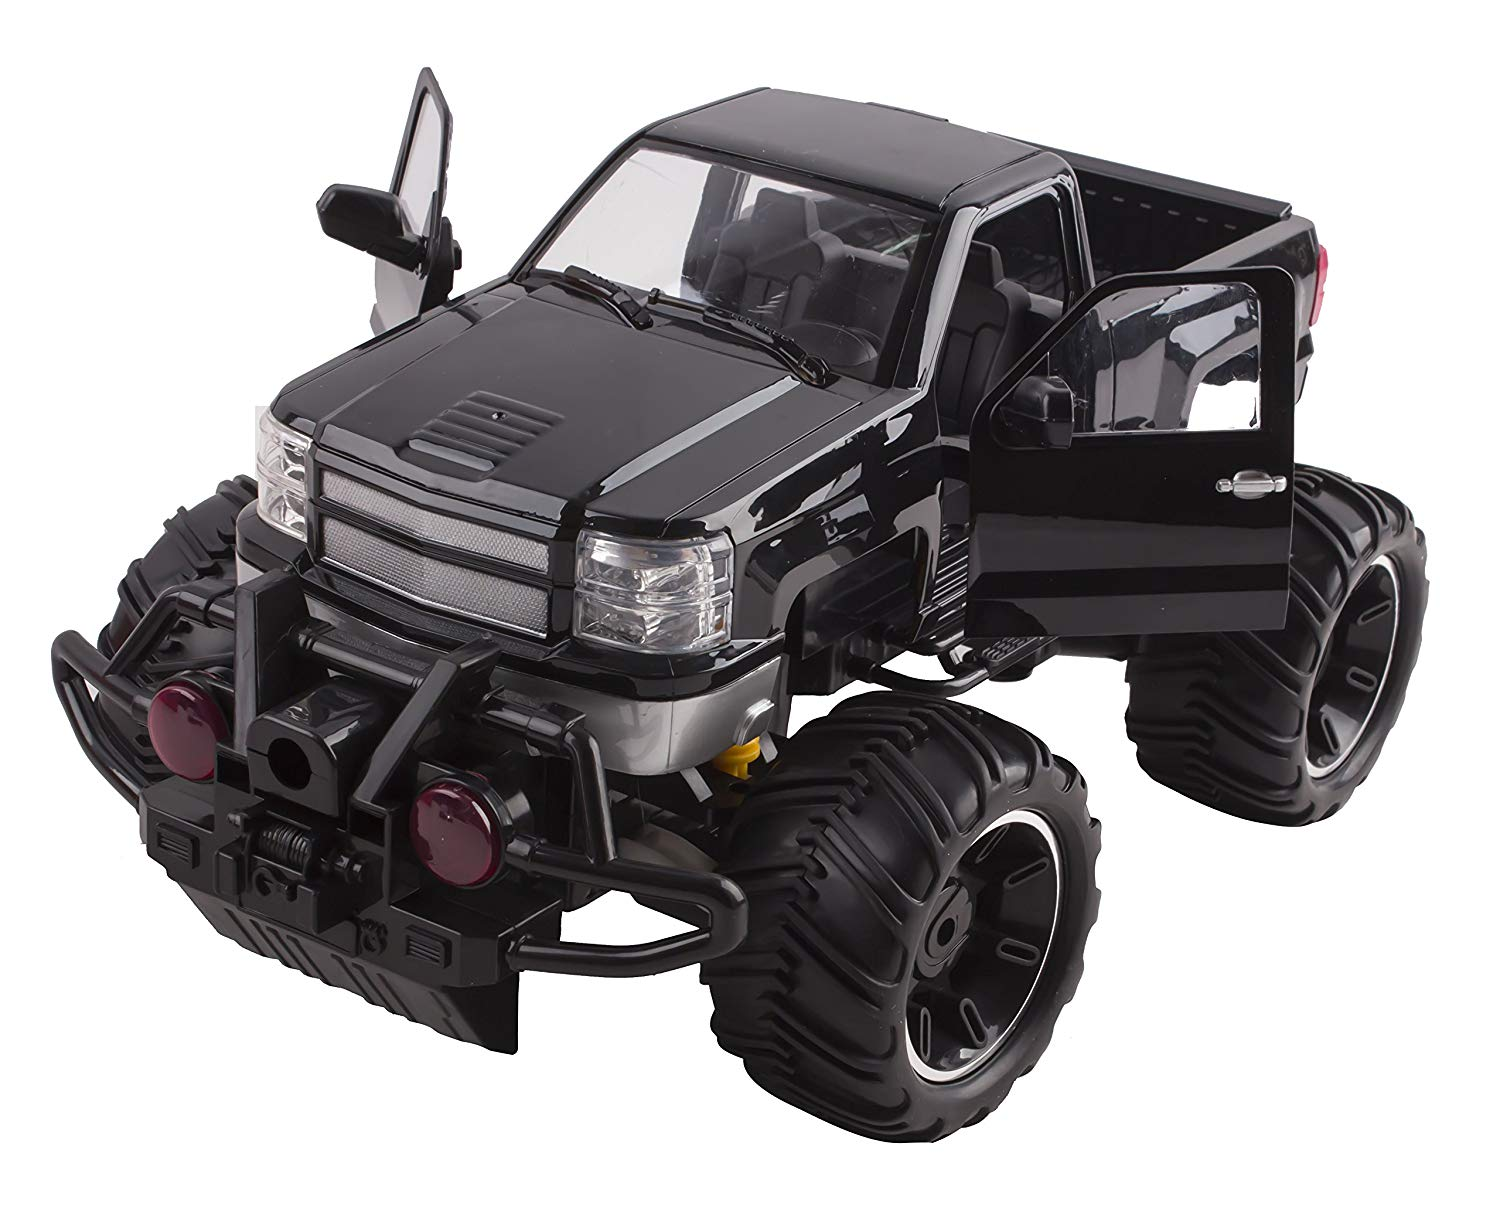 Wheel Beast Rc Monster Truck Remote Control Doors Opening Car Light Up With Led Headlights Ready To Run Includes Rechargeable Battery 1 14 Size Off Road